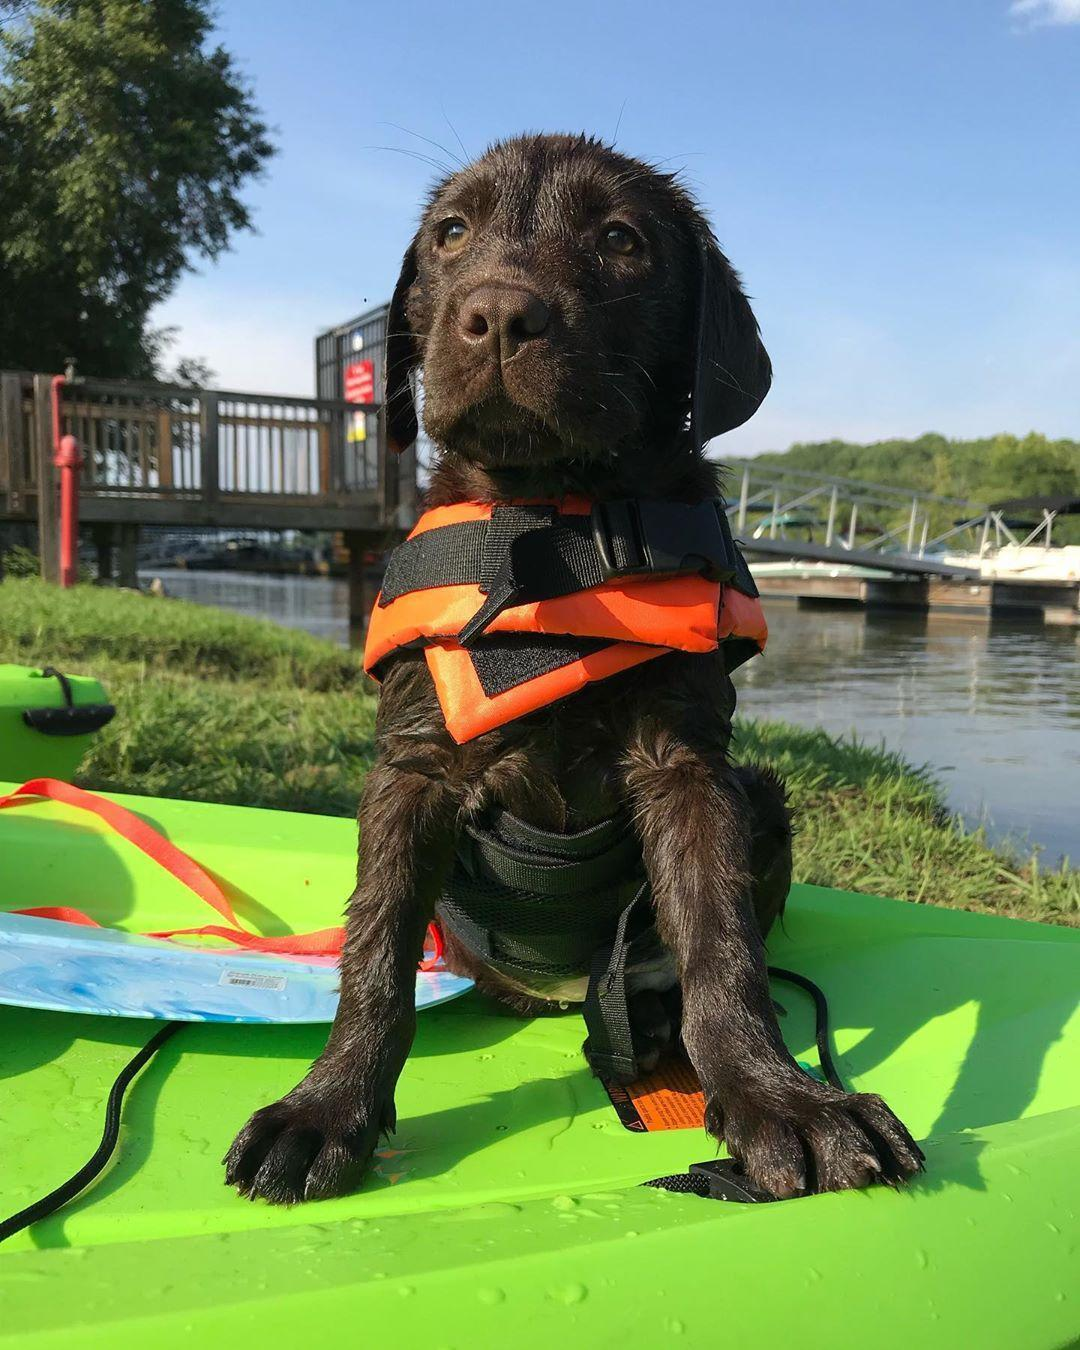 Spend the day at the pet-friendly U.S. National Whitewater Center along the Catawba River.